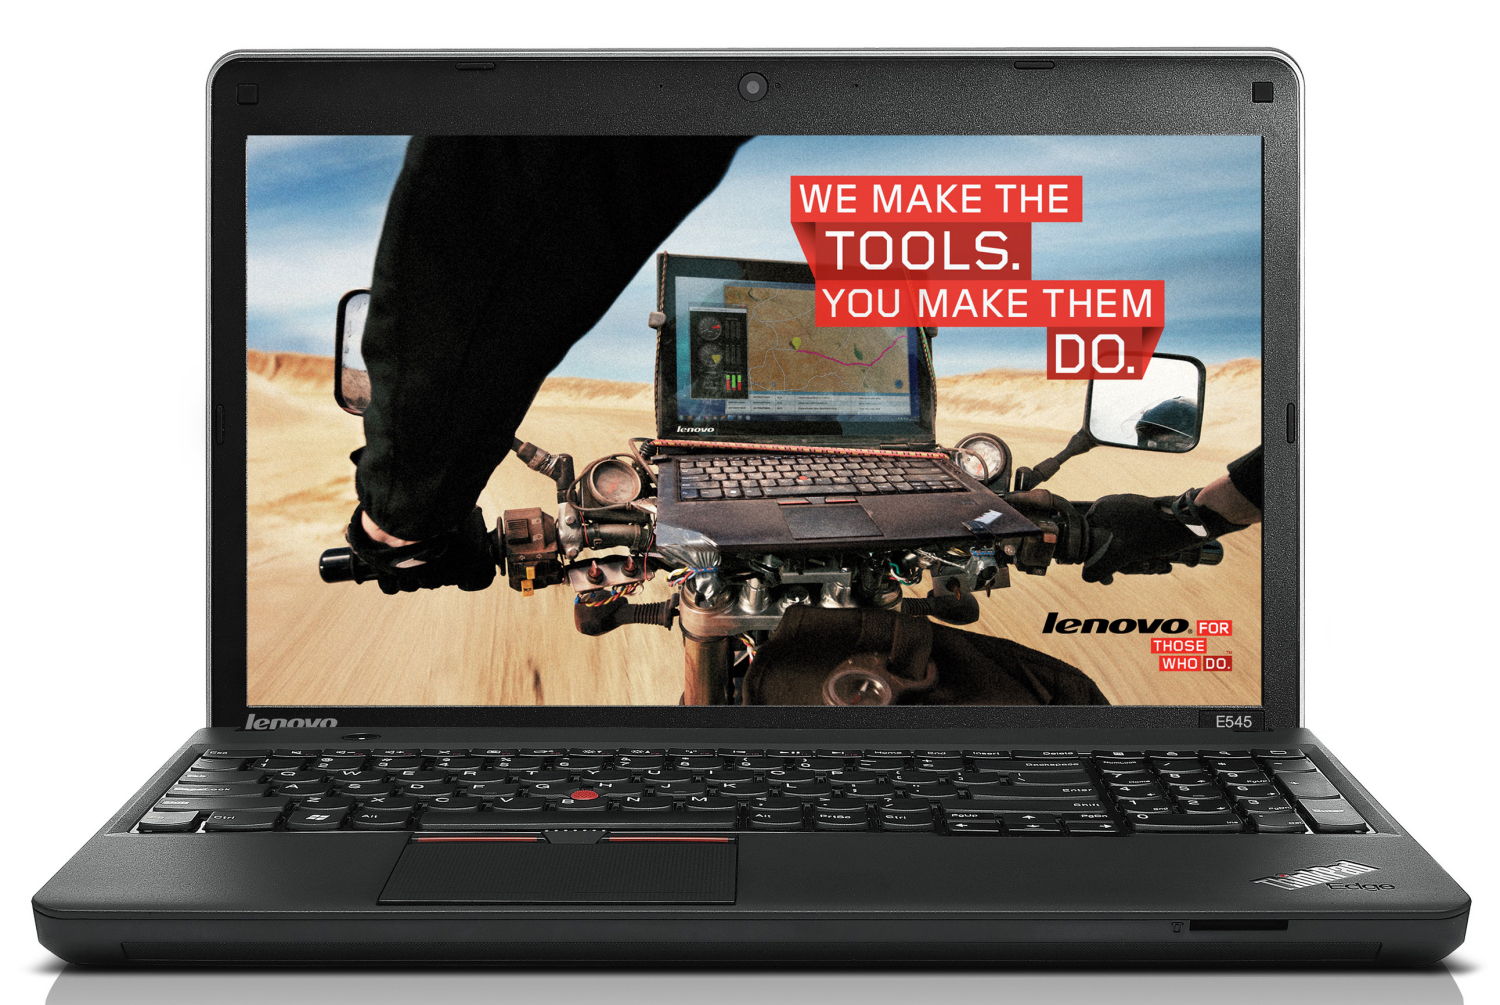 Lenovo ThinkPad Edge E545 Power Management Driver Windows 7